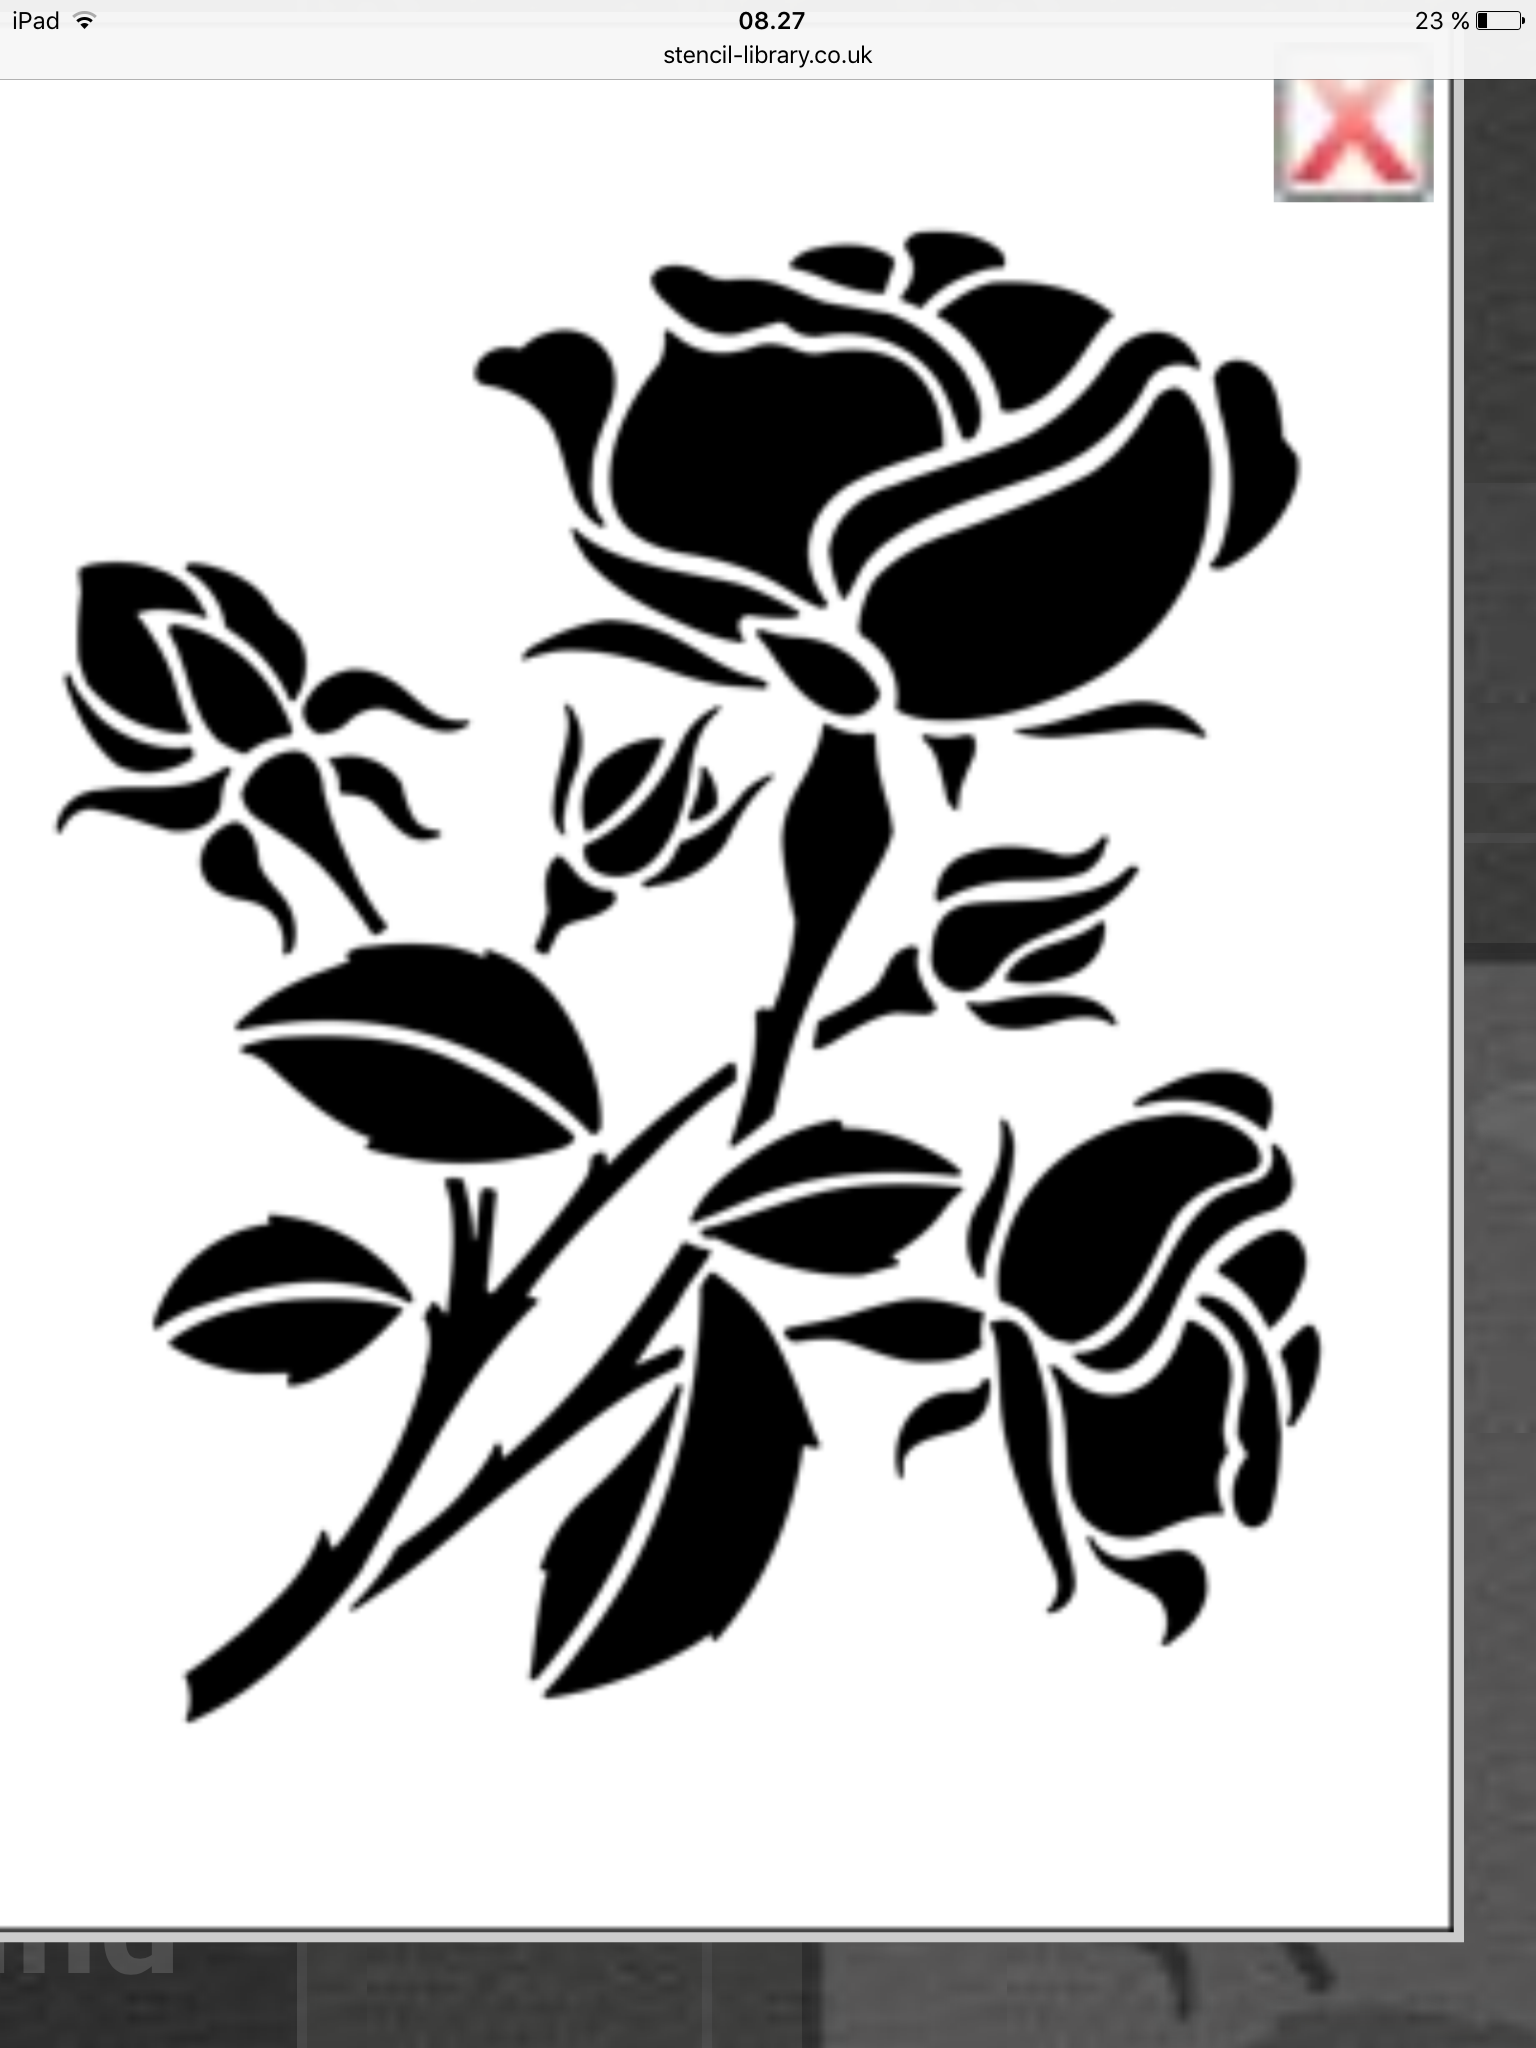 Pin by toril ytrelid on oregami pinterest stenciling rose stencil from the stencil library budget stencils range stencil code amipublicfo Images